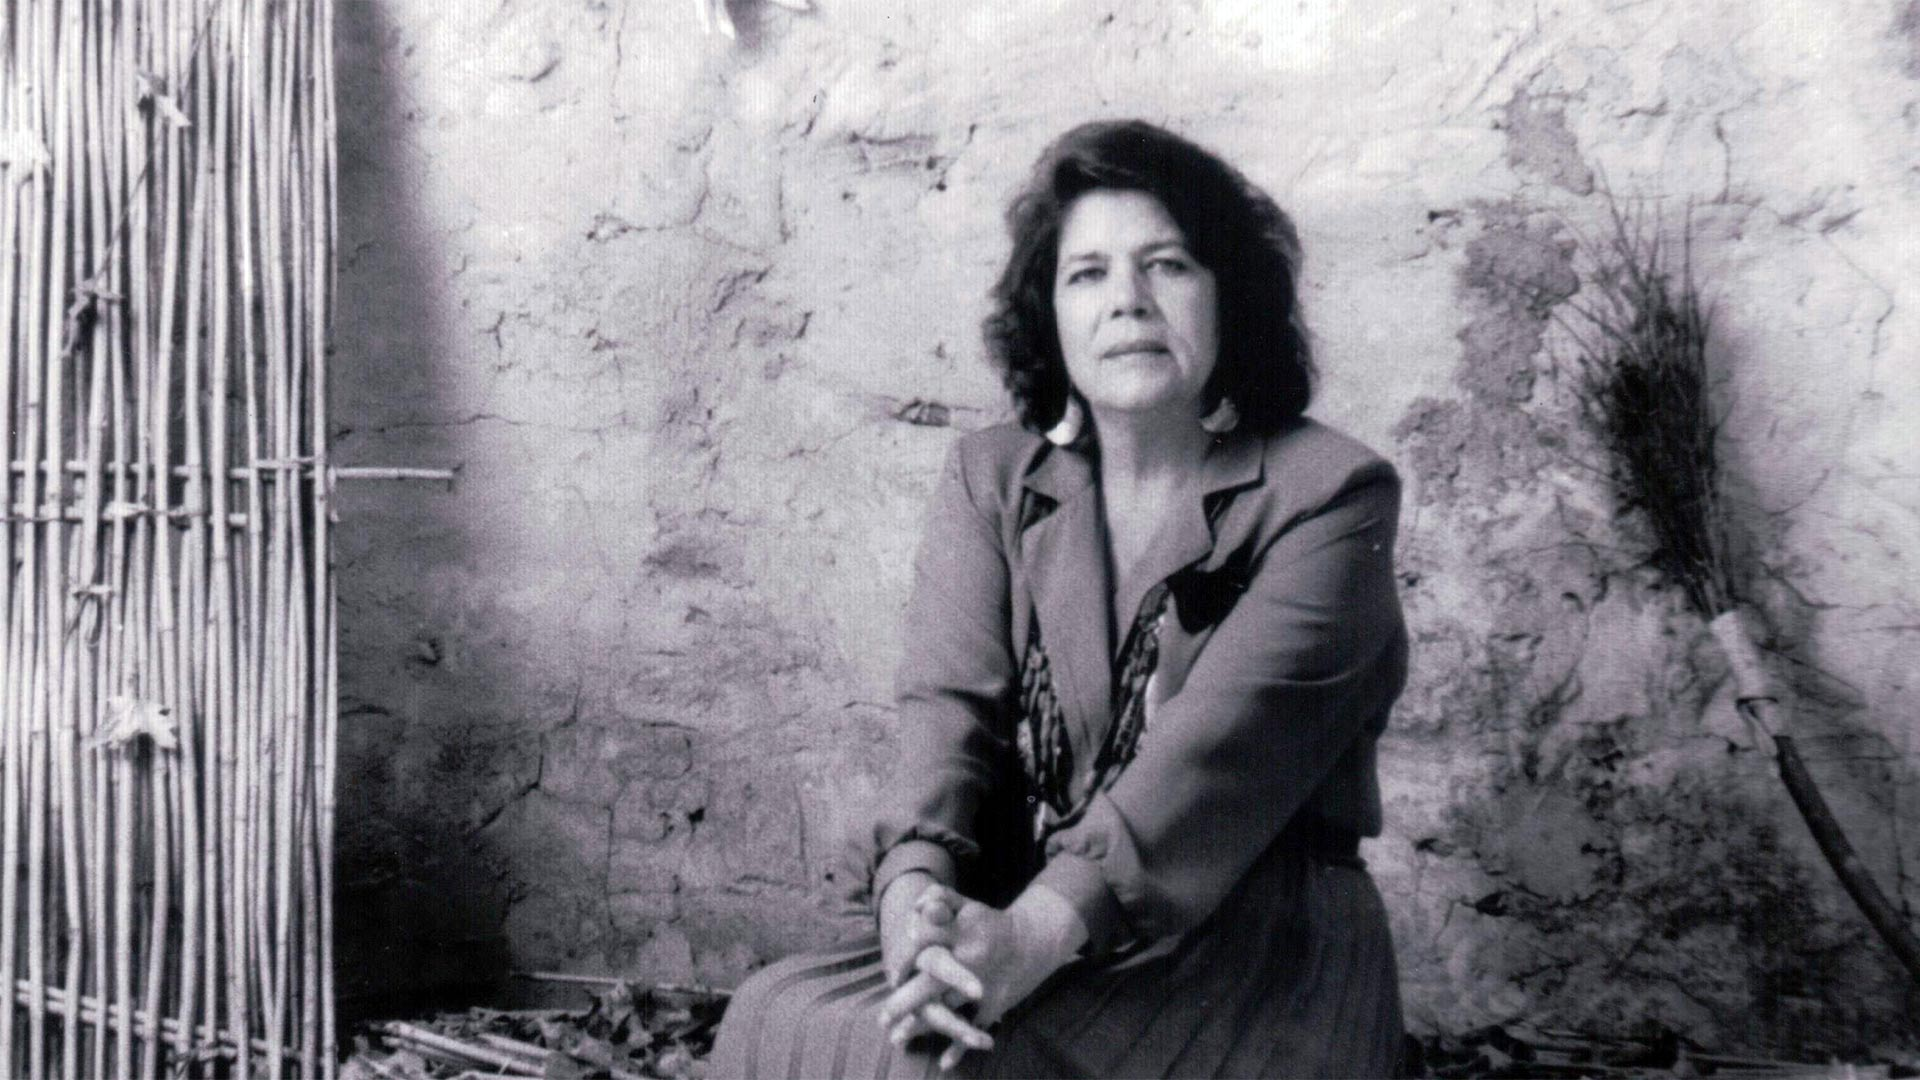 Wilma Mankiller overcame rampant sexism and personal challenges to emerge as the Cherokee Nation's first woman Principal Chief in 1985.